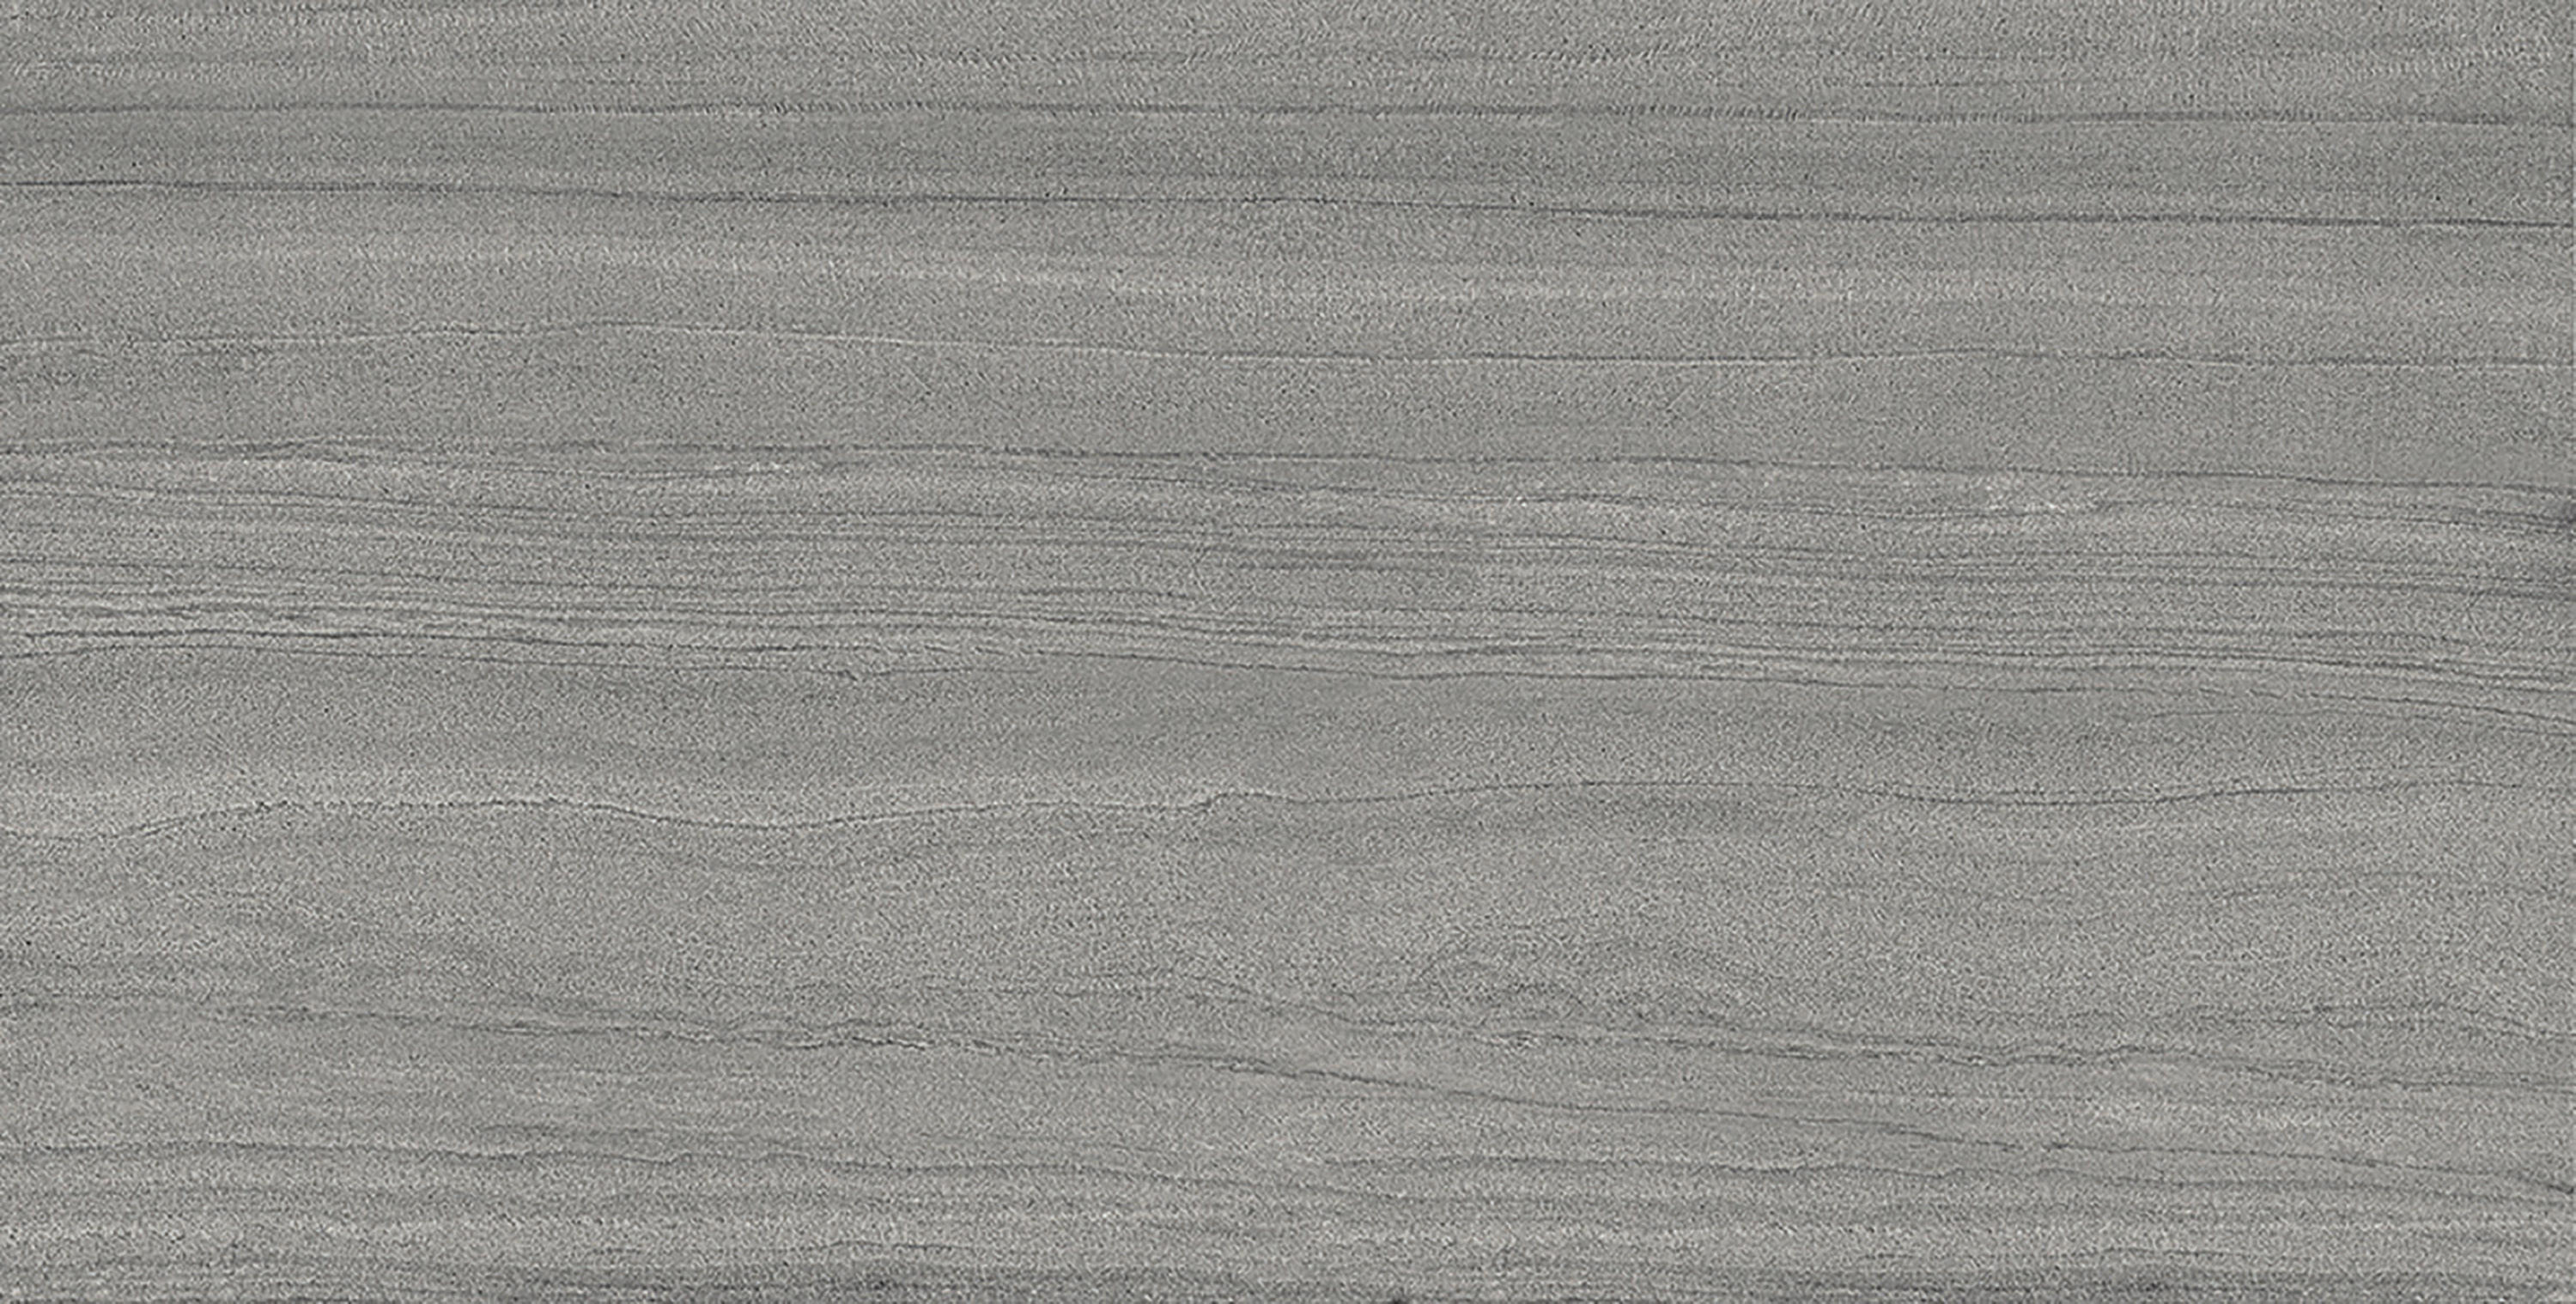 Evo q dark grey floor tiles from emilgroup architonic evo q dark grey by emilgroup floor tiles dailygadgetfo Gallery